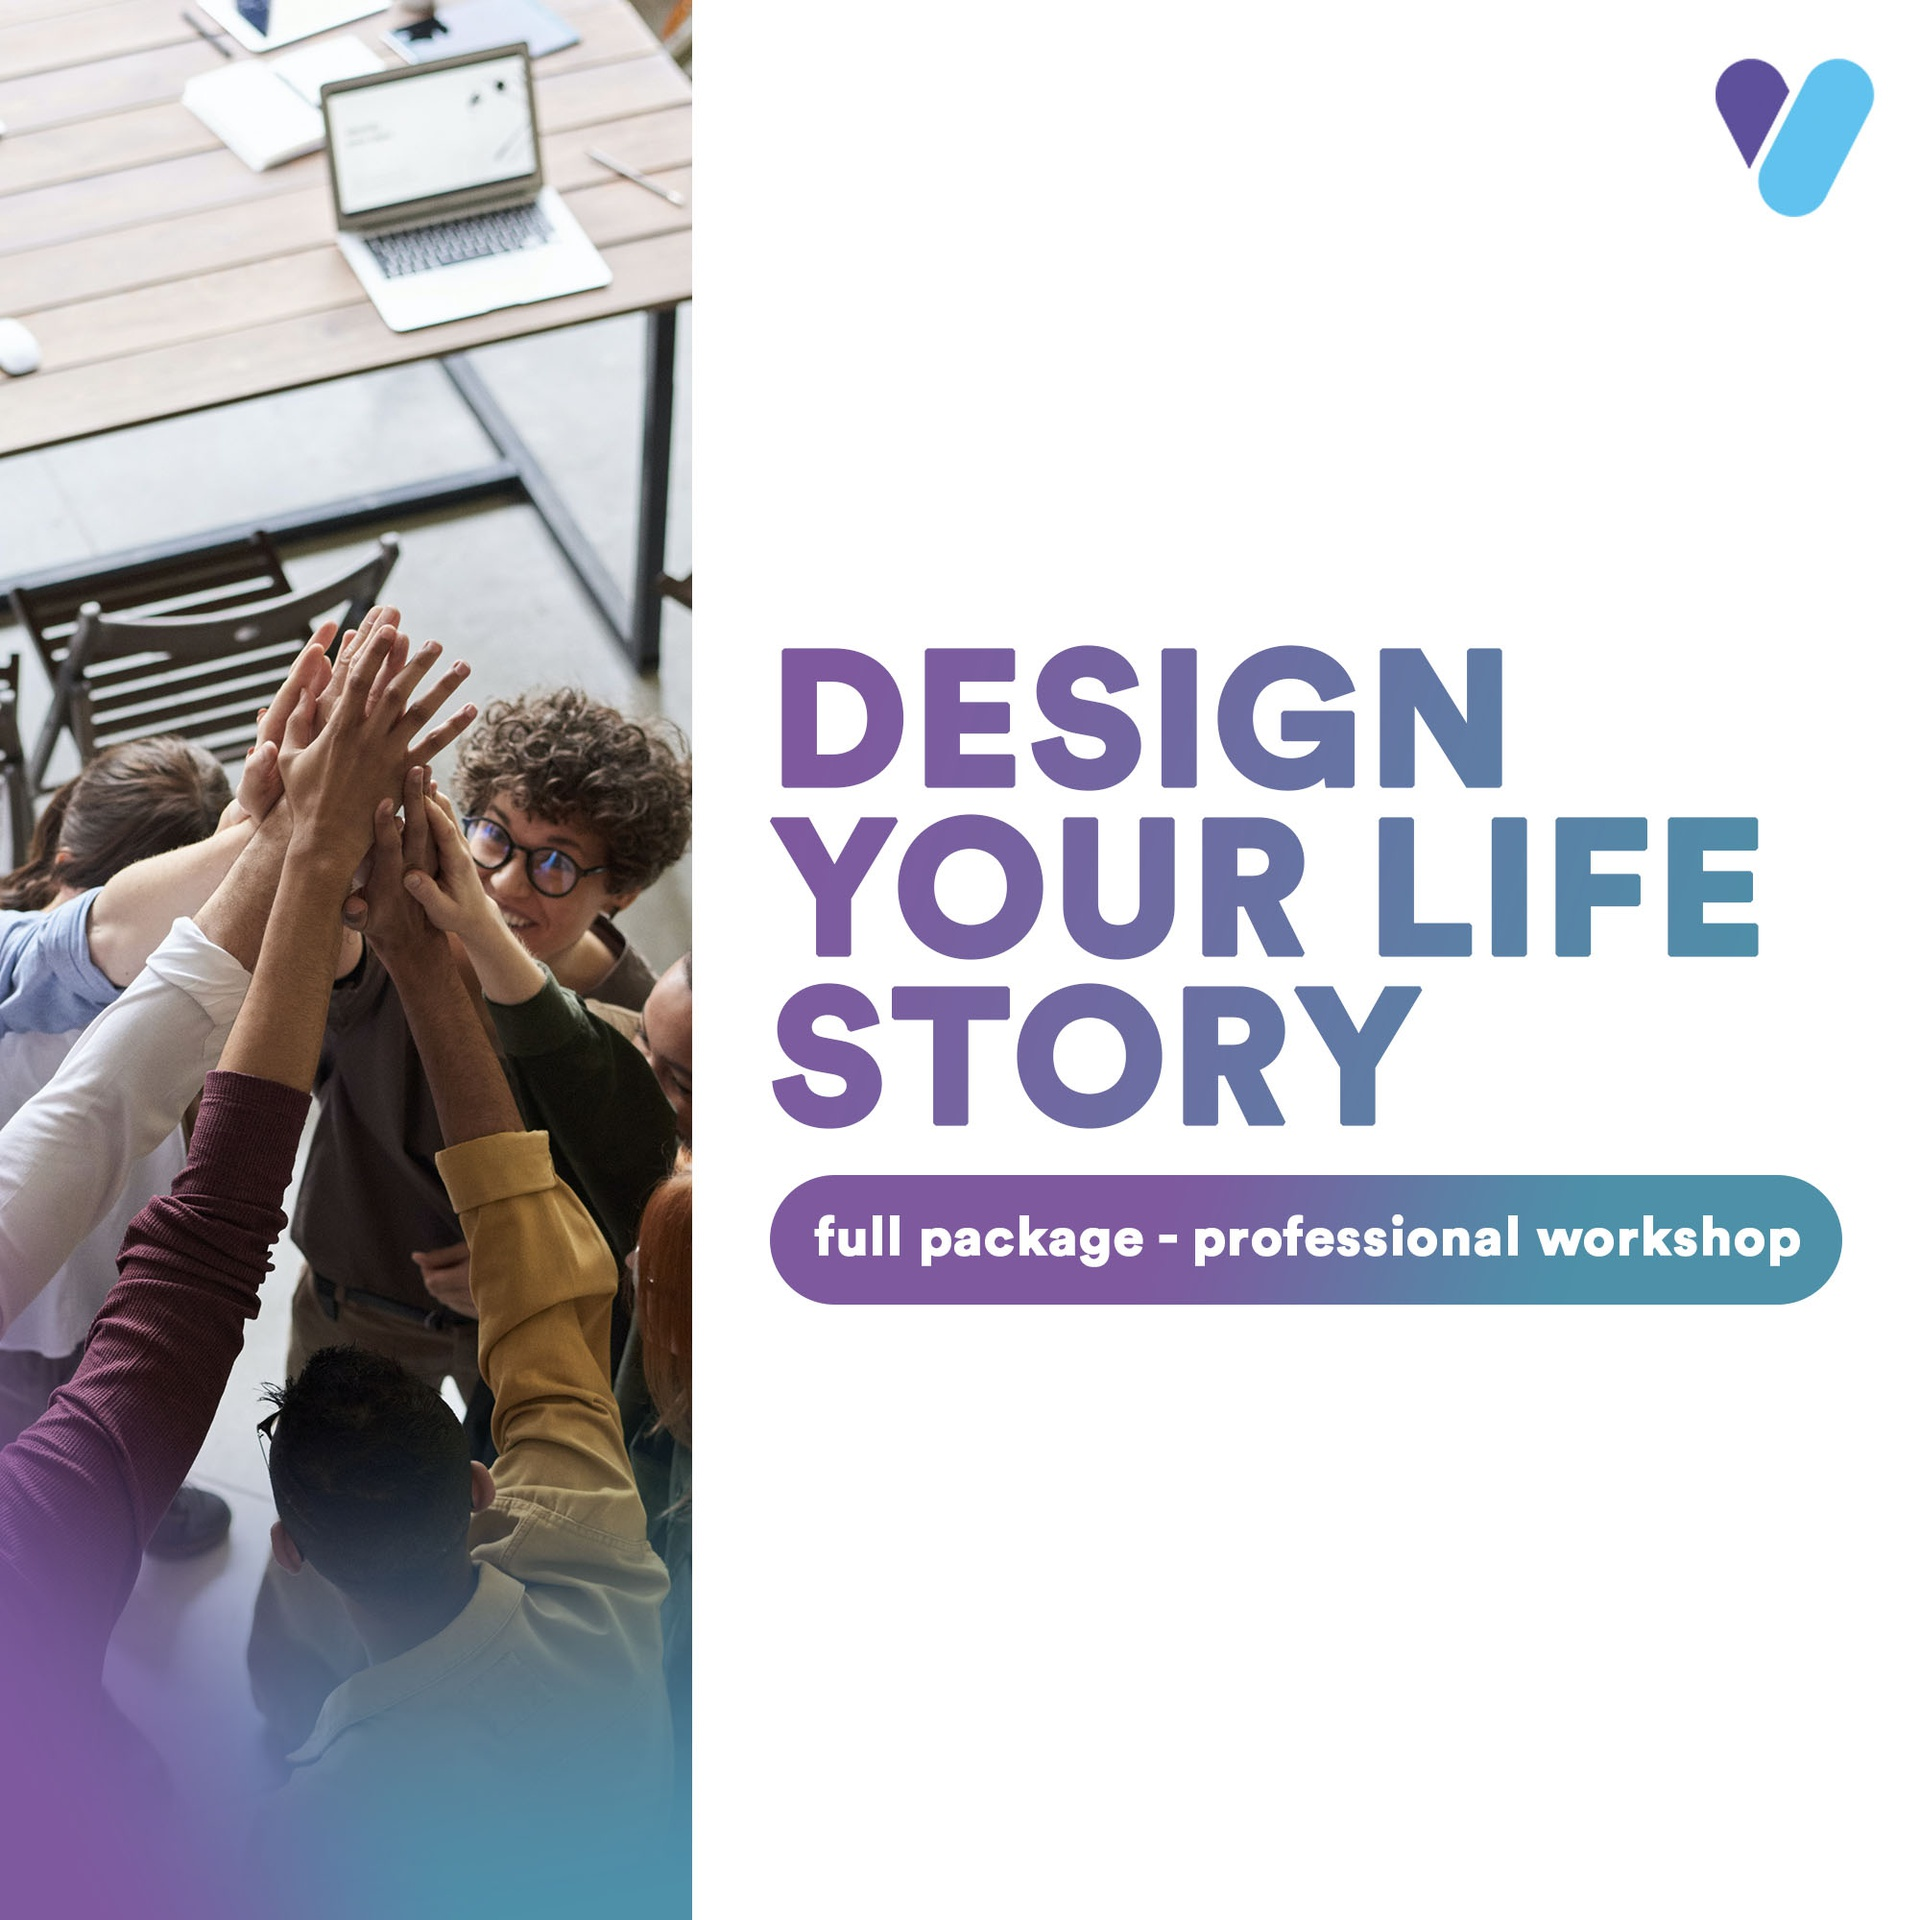 Design Your Life Story